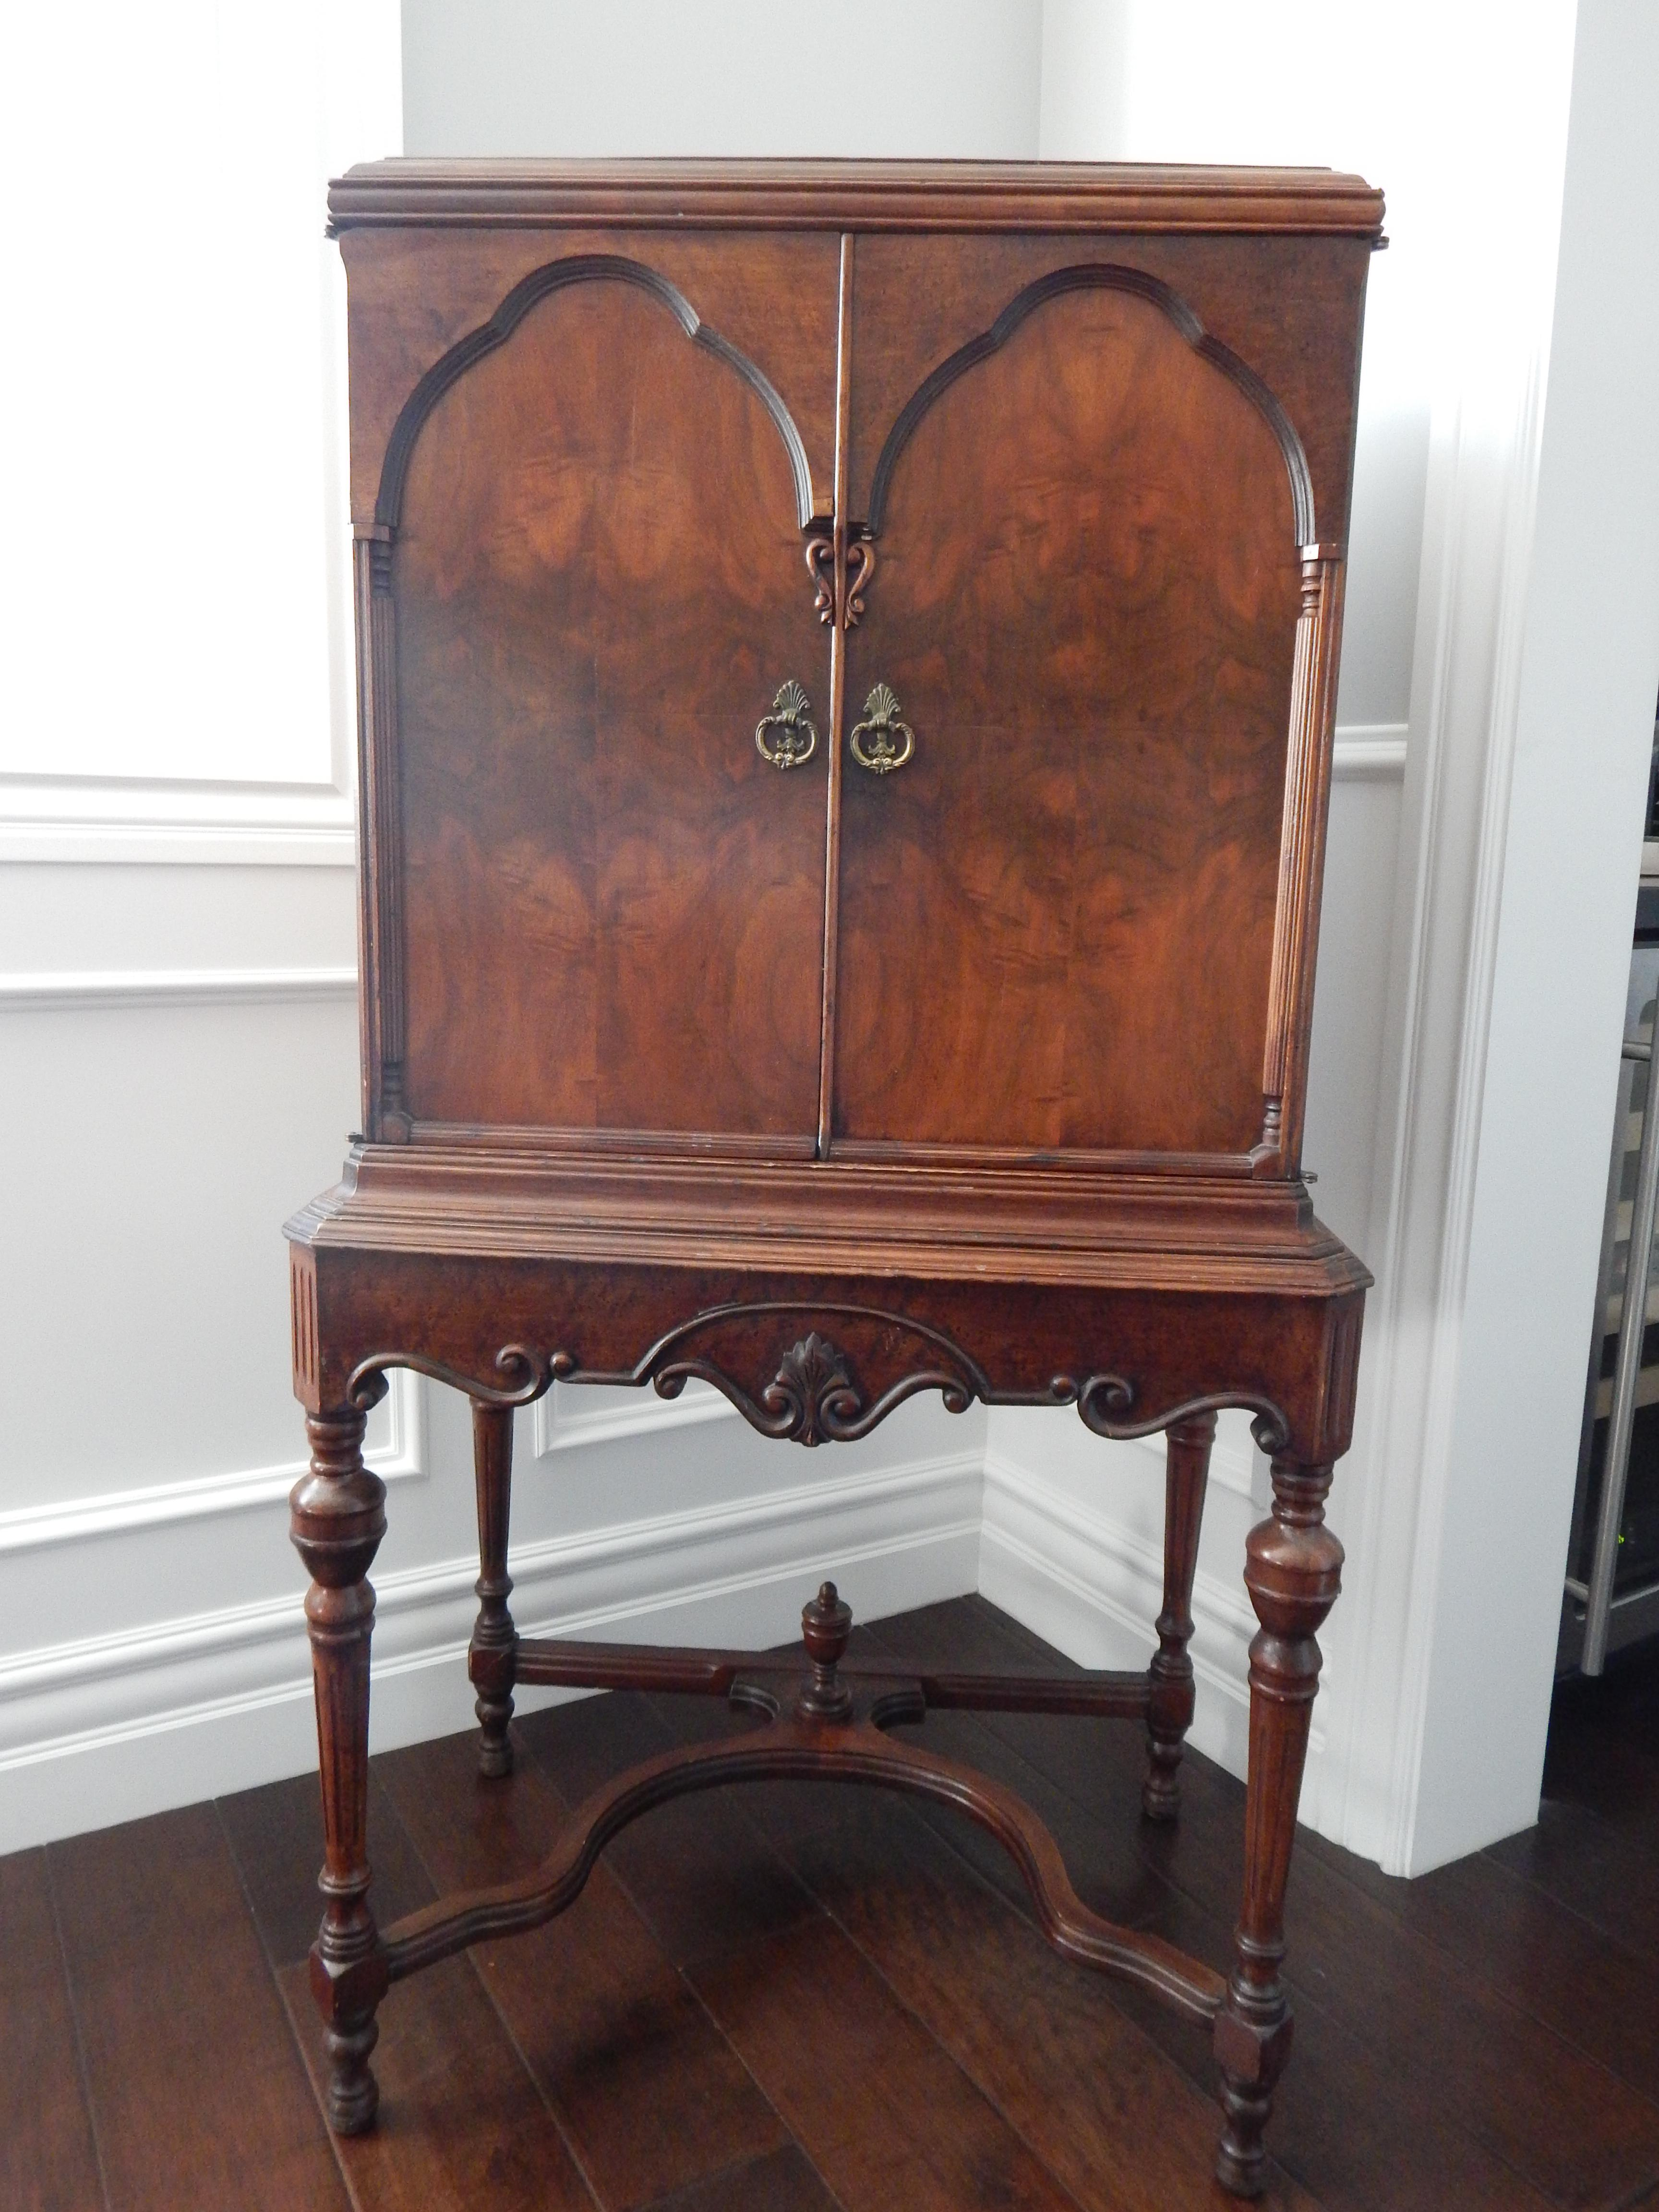 Attractive Vintage Cabinet Dating From The 1940s. Originally A Radio Cabinet  But Now Ideal For